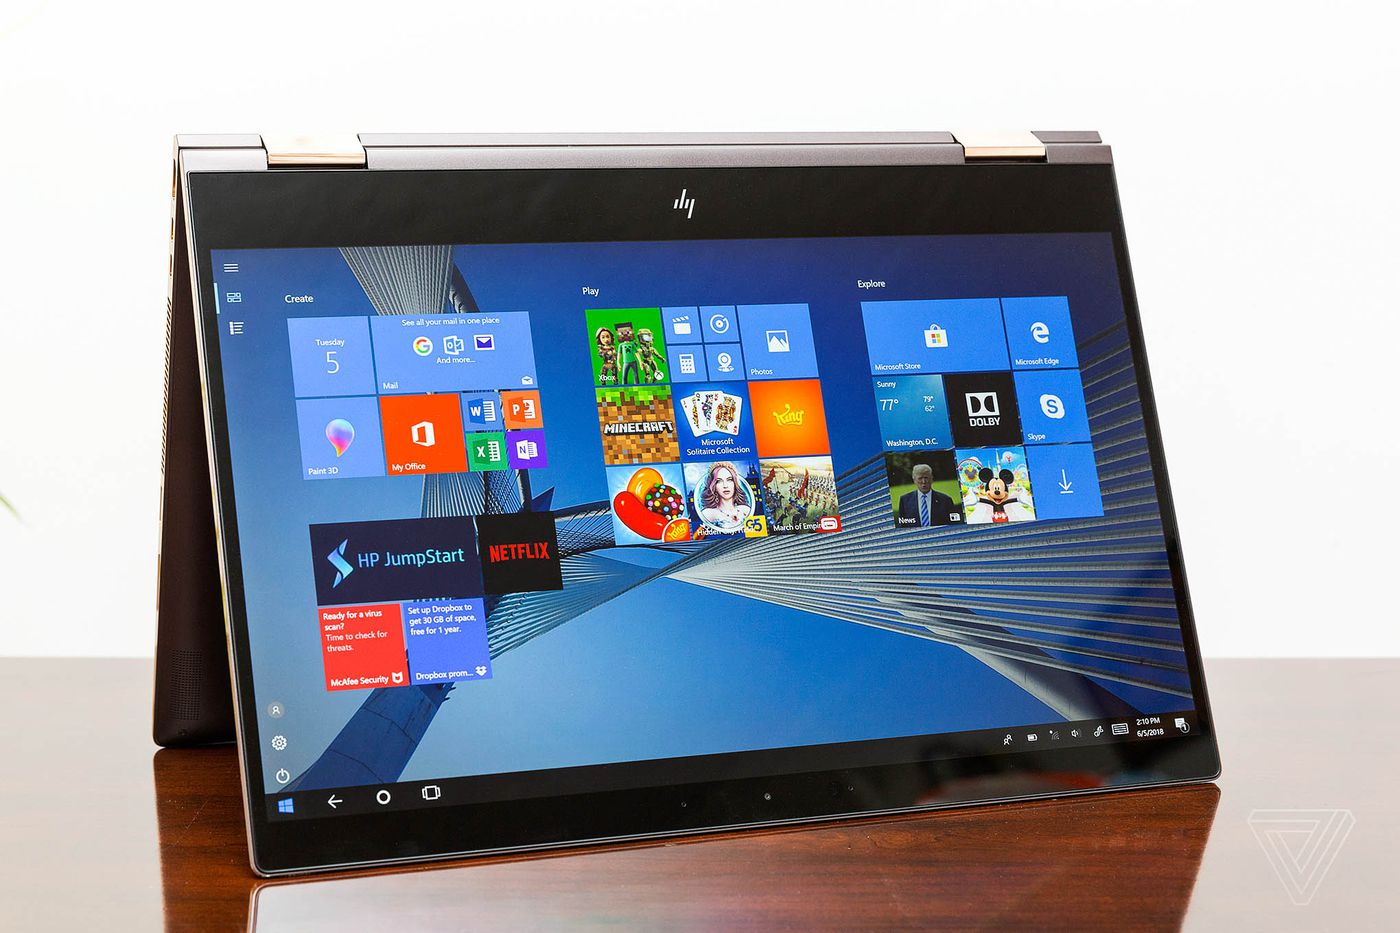 HP Spectre x360 15 review: performance, portability, and compromise